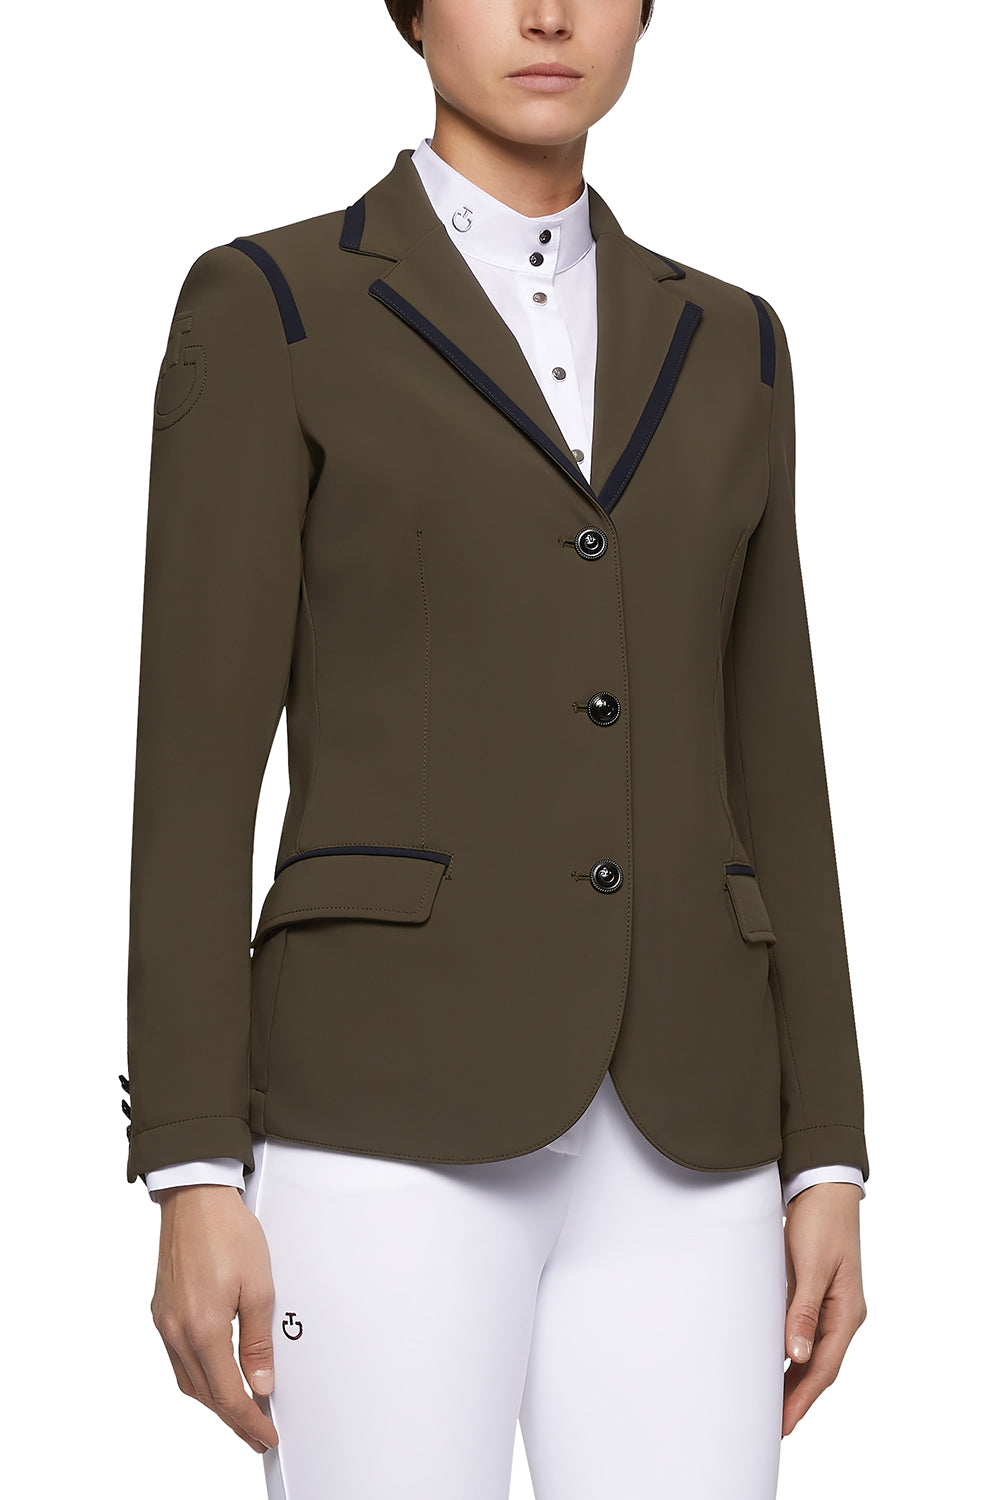 CAVALLERIA TOSCANA SHOW COAT WITH PIPING DETAIL